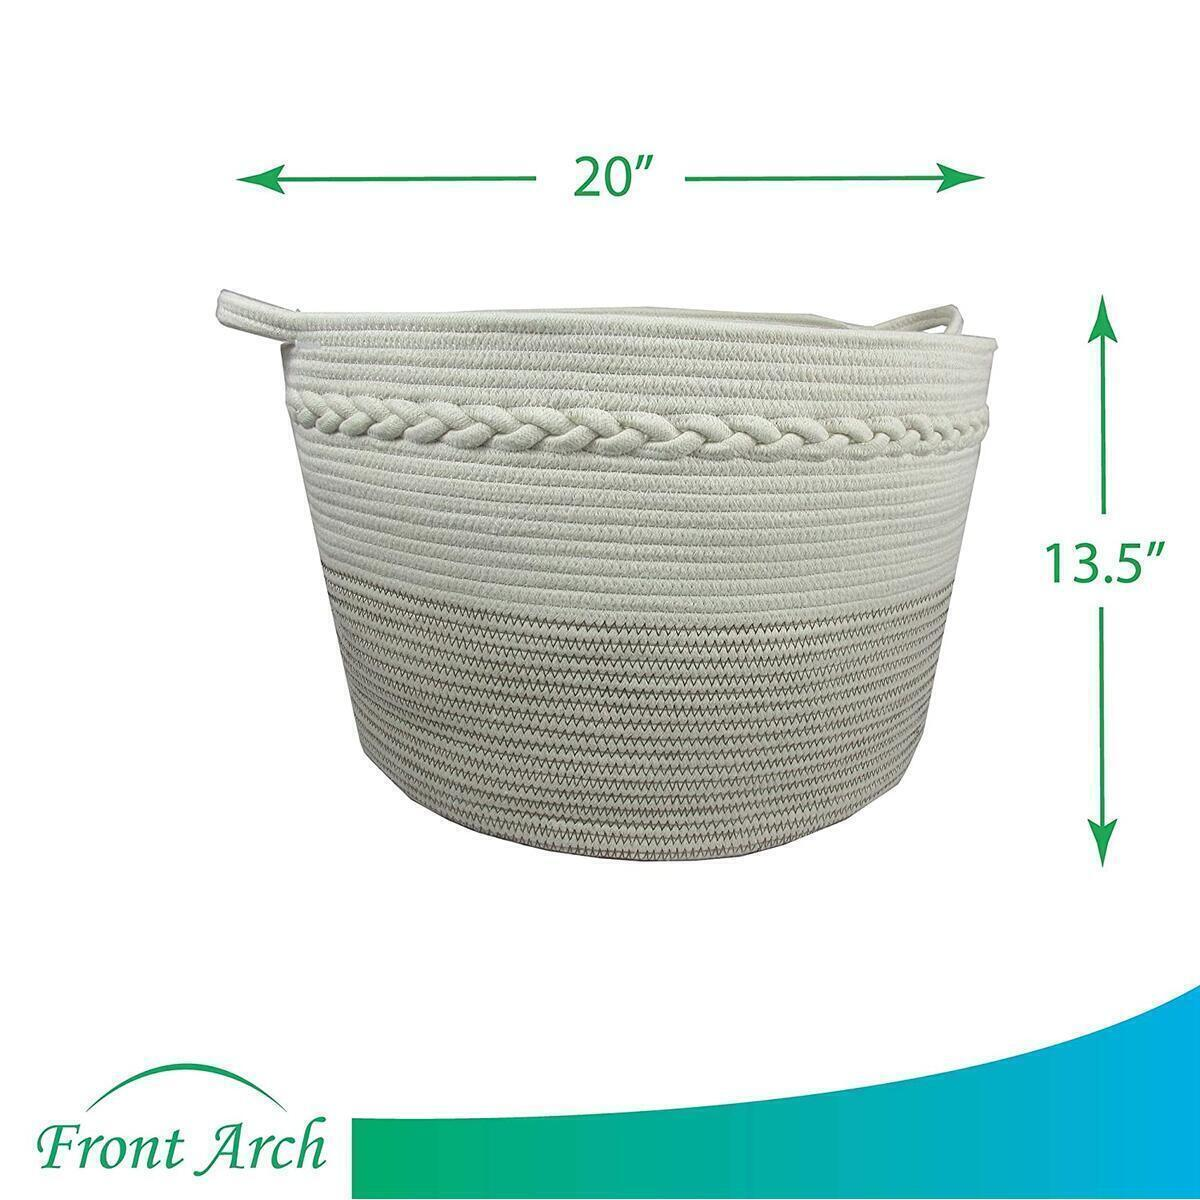 "Rope Basket|Woven Basket|Storage Basket|Decorative Hampers for Laundry| Large Cotton Rope Storage Baskets Great as Laundry Basket, Laundry Hamper, Toy Storage, Toy Bin,Blanket Basket,XXL20""X13.5"""